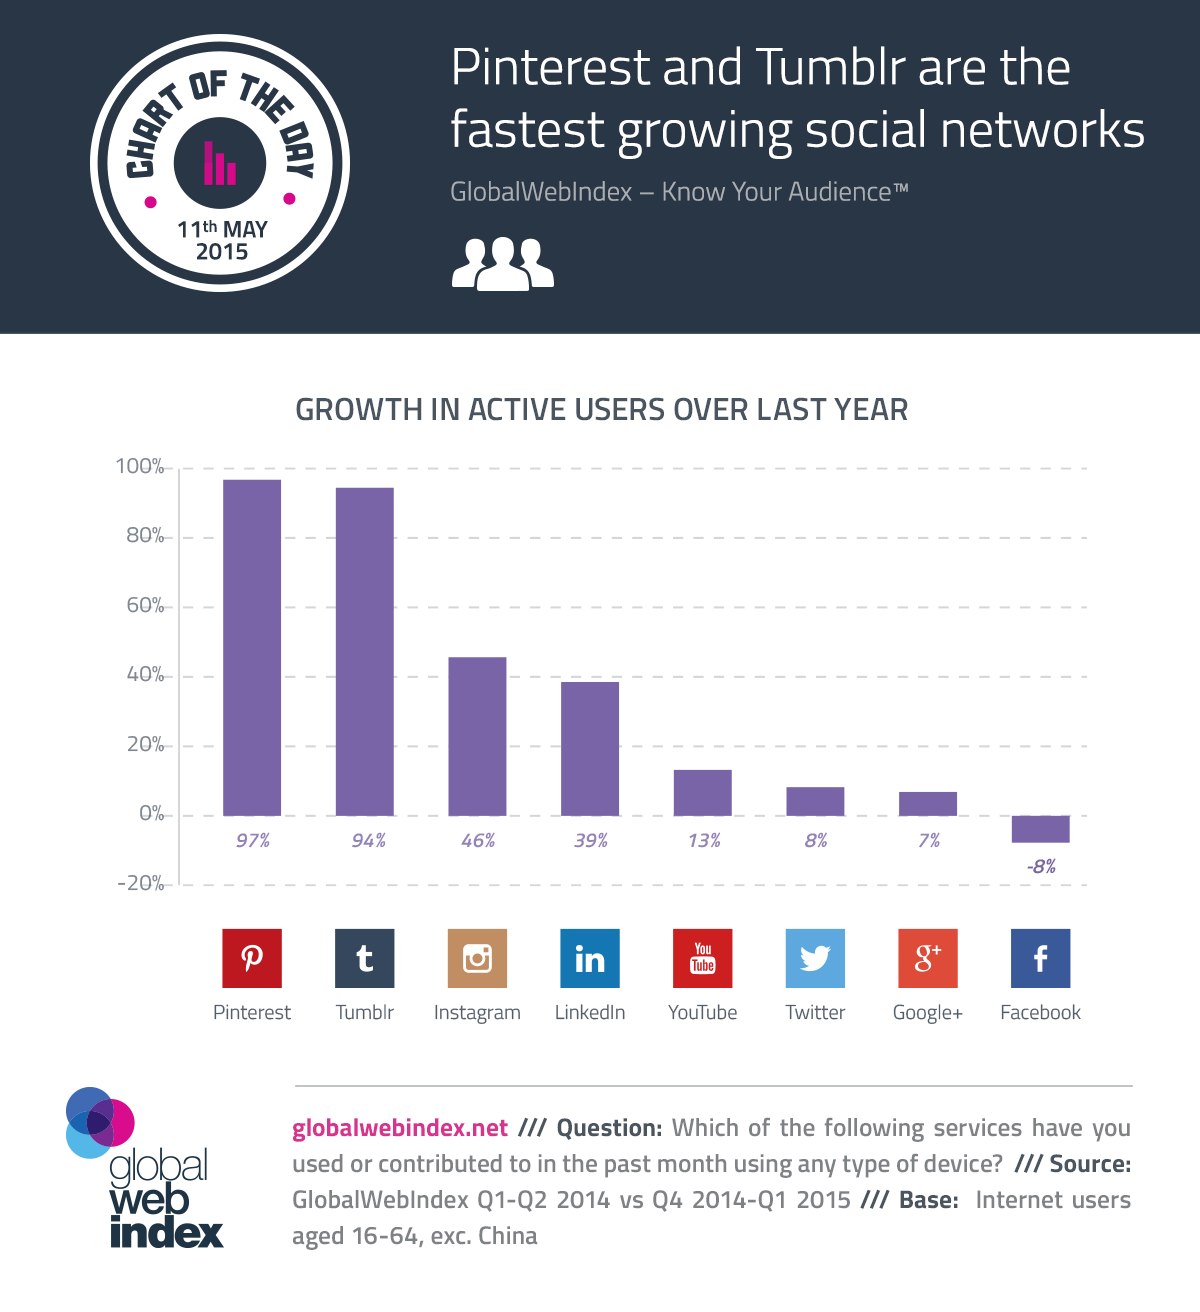 11th-May-2015-Pinterest-and-Tumblr-are-the-fastest-growing-social-networks